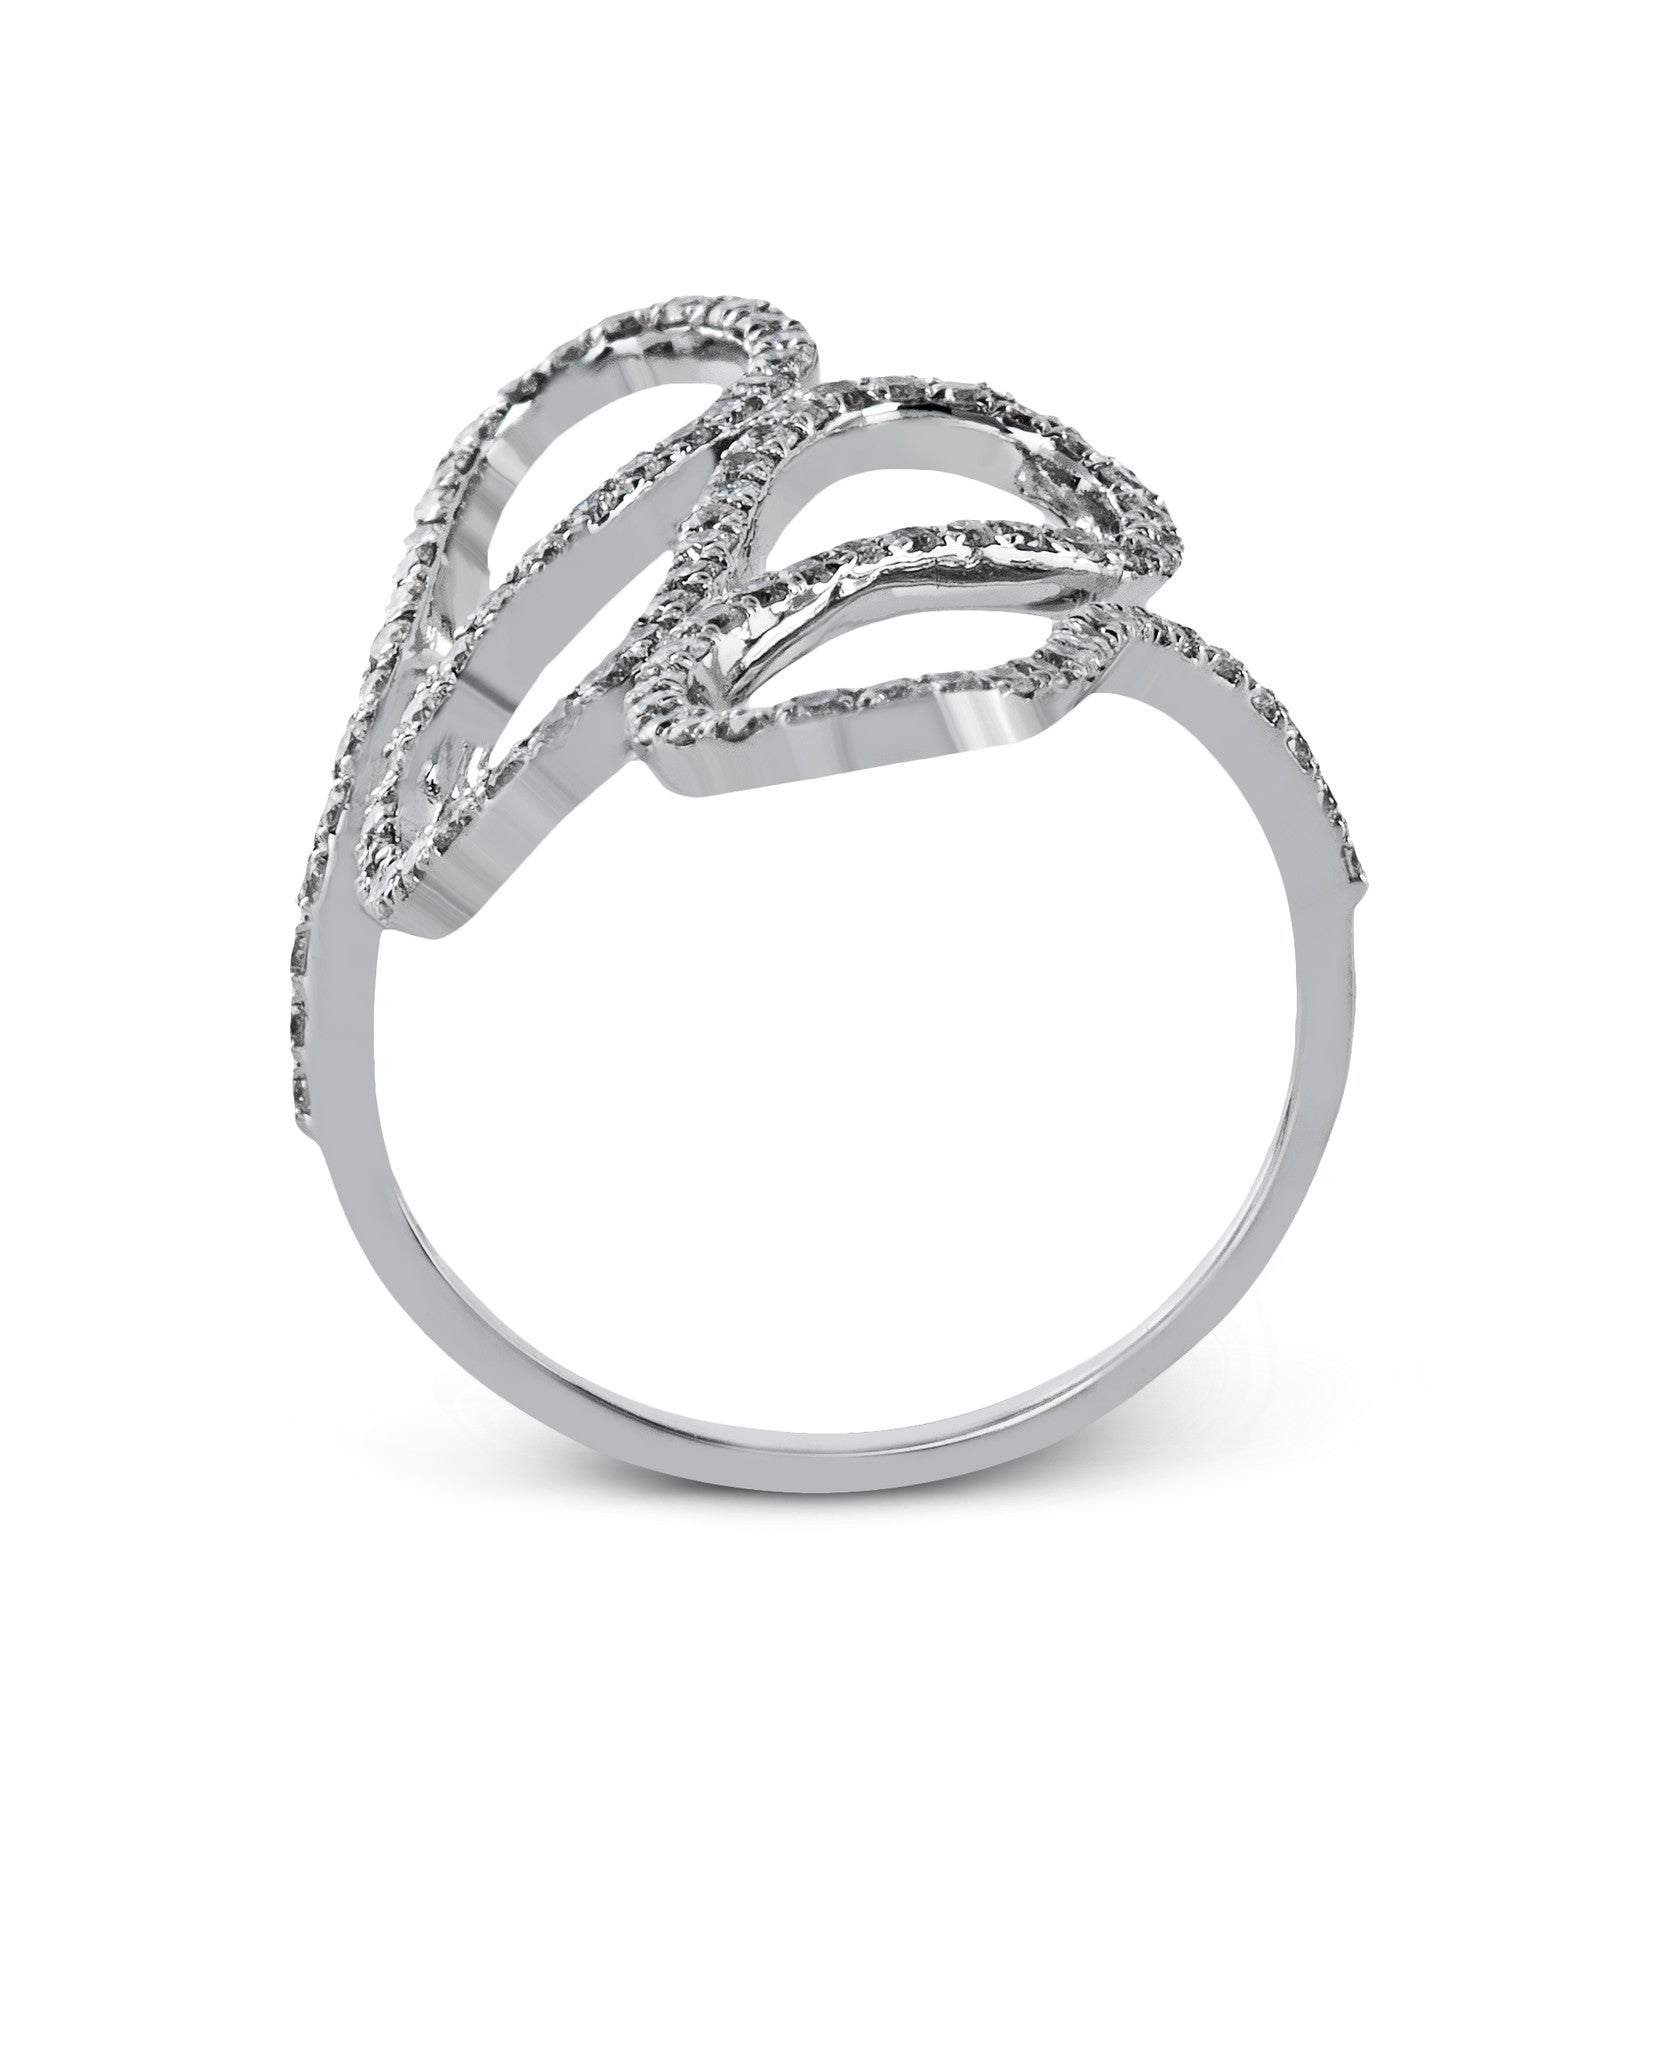 Zeghani Diamond 14k White Gold Fashion Ring